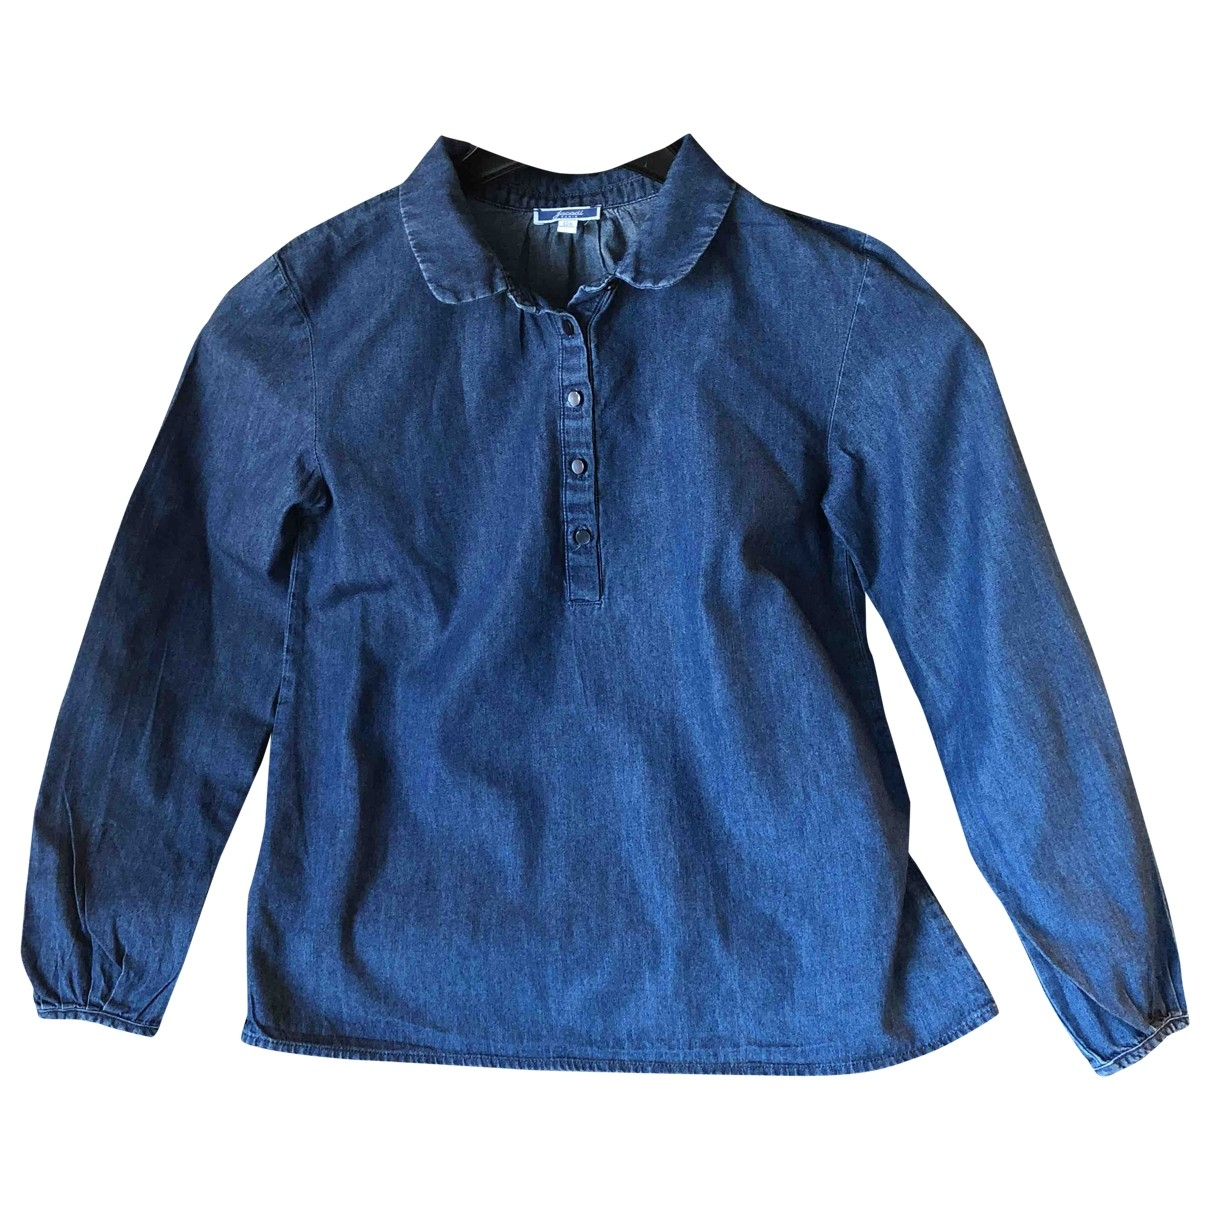 Jacadi \N Blue Cotton  top for Kids 12 years - XS FR